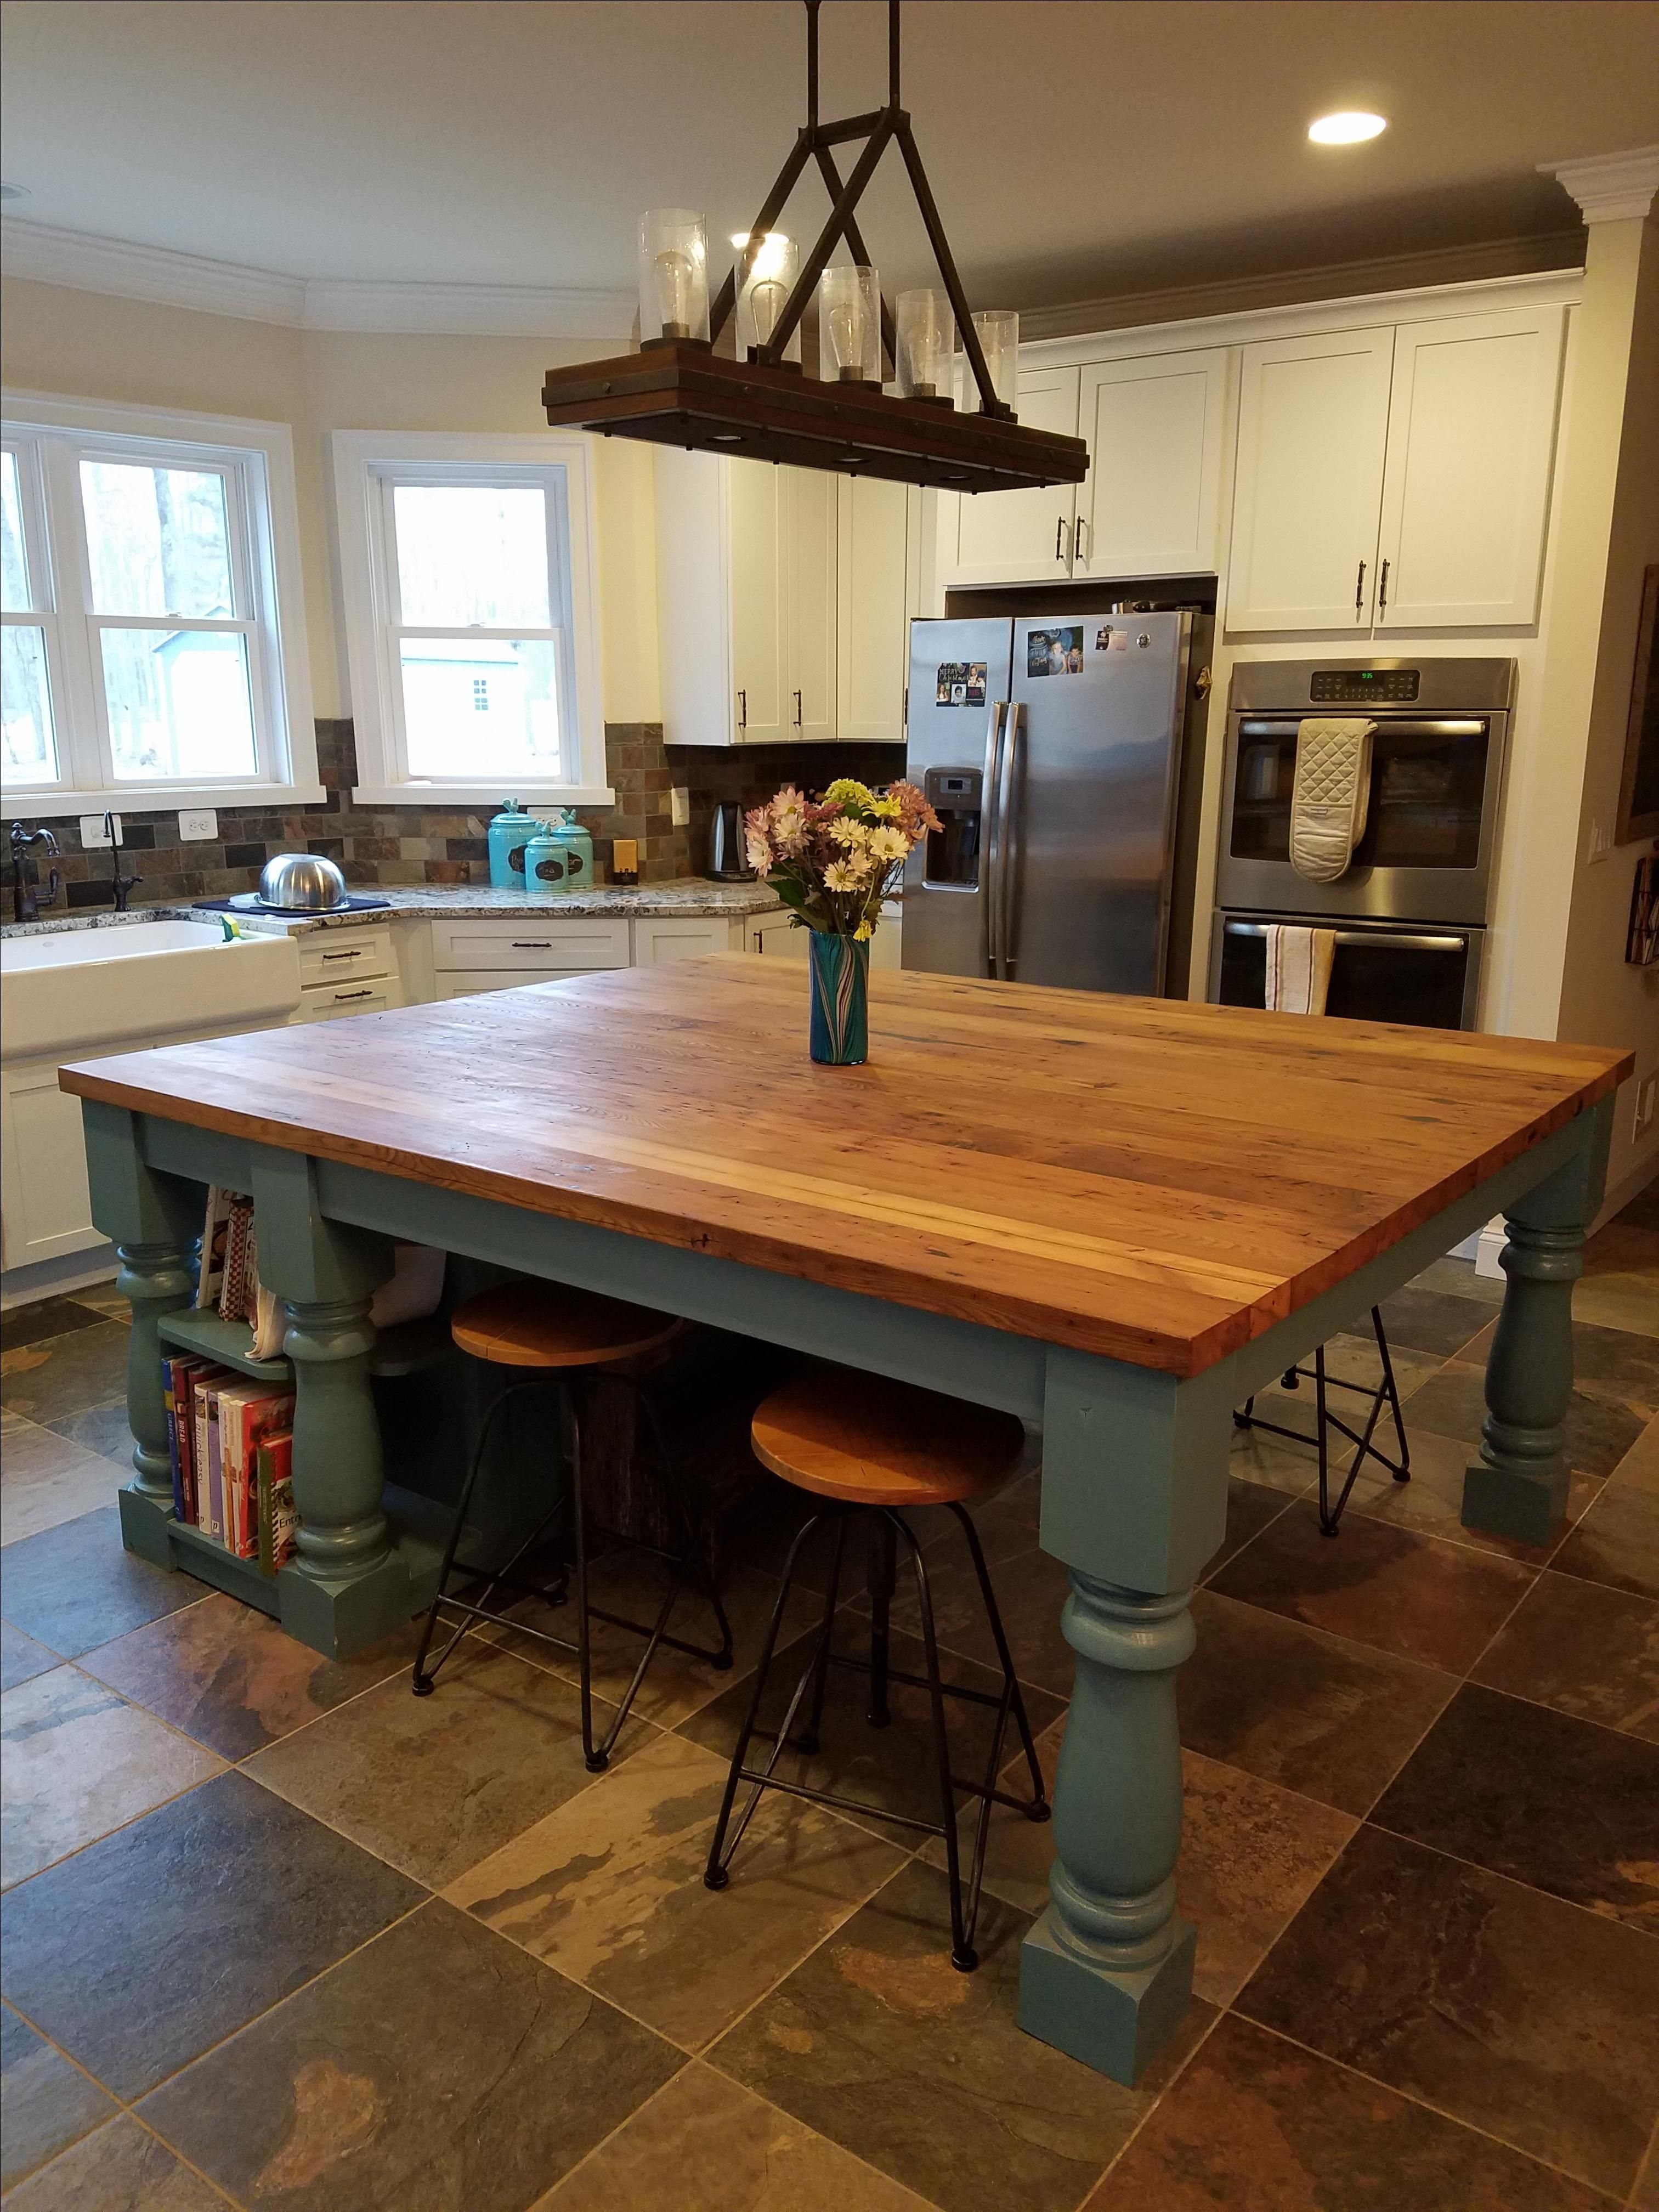 Kitchen Island With Cabinets And Seating 2020 Kitchen Island Dining Table Custom Kitchen Island Wooden Island Kitchen